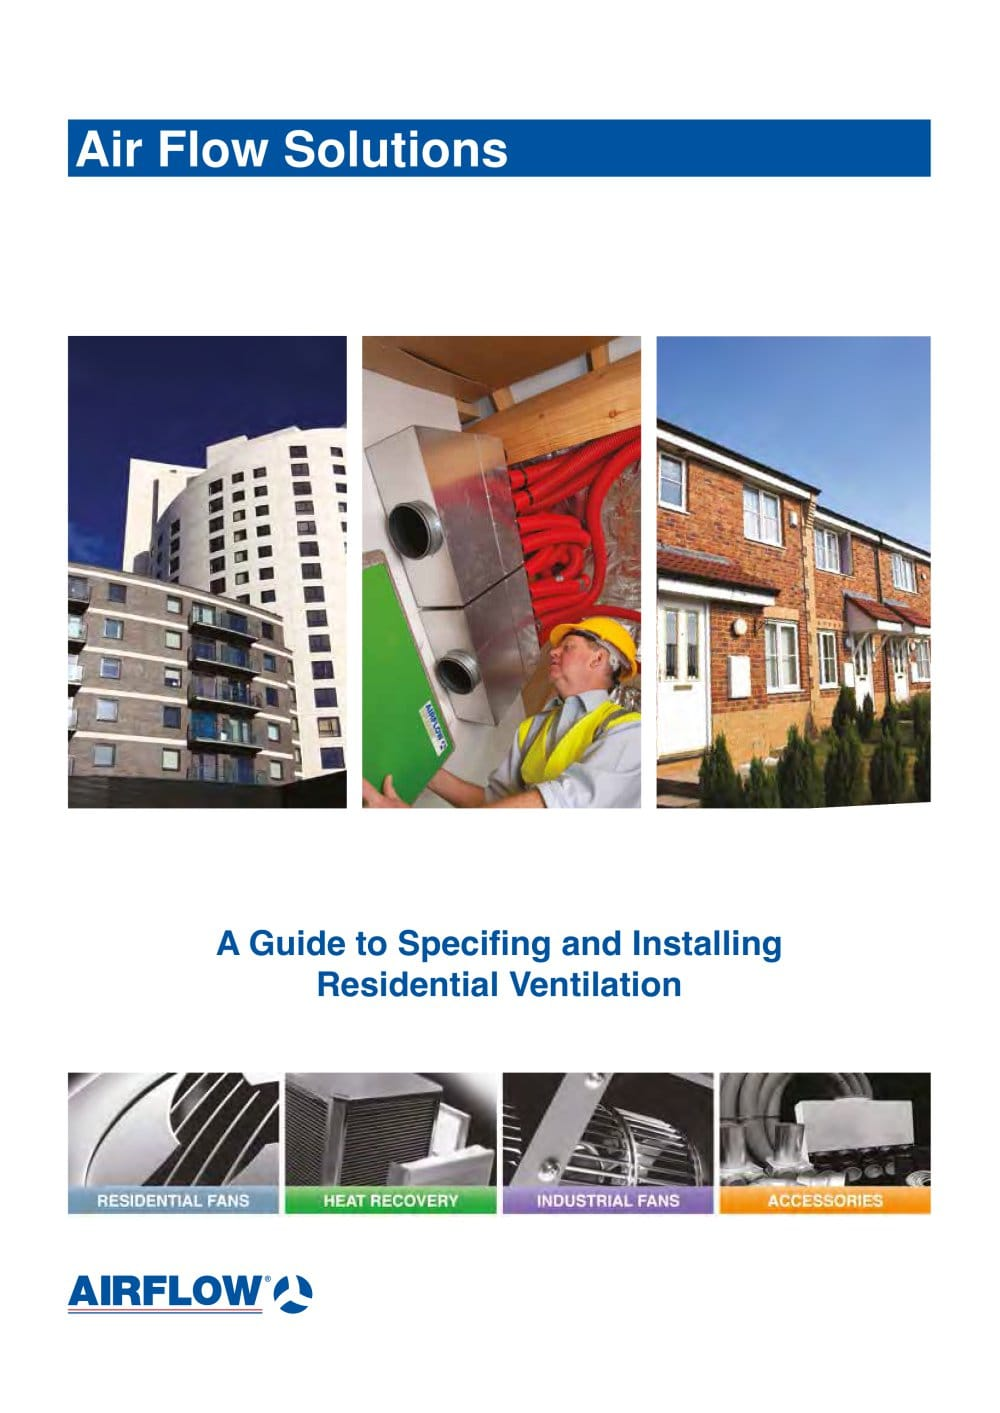 Building regulations bathroom extractor fans - Ventilation Guide Do S And Don Ts 1 24 Pages